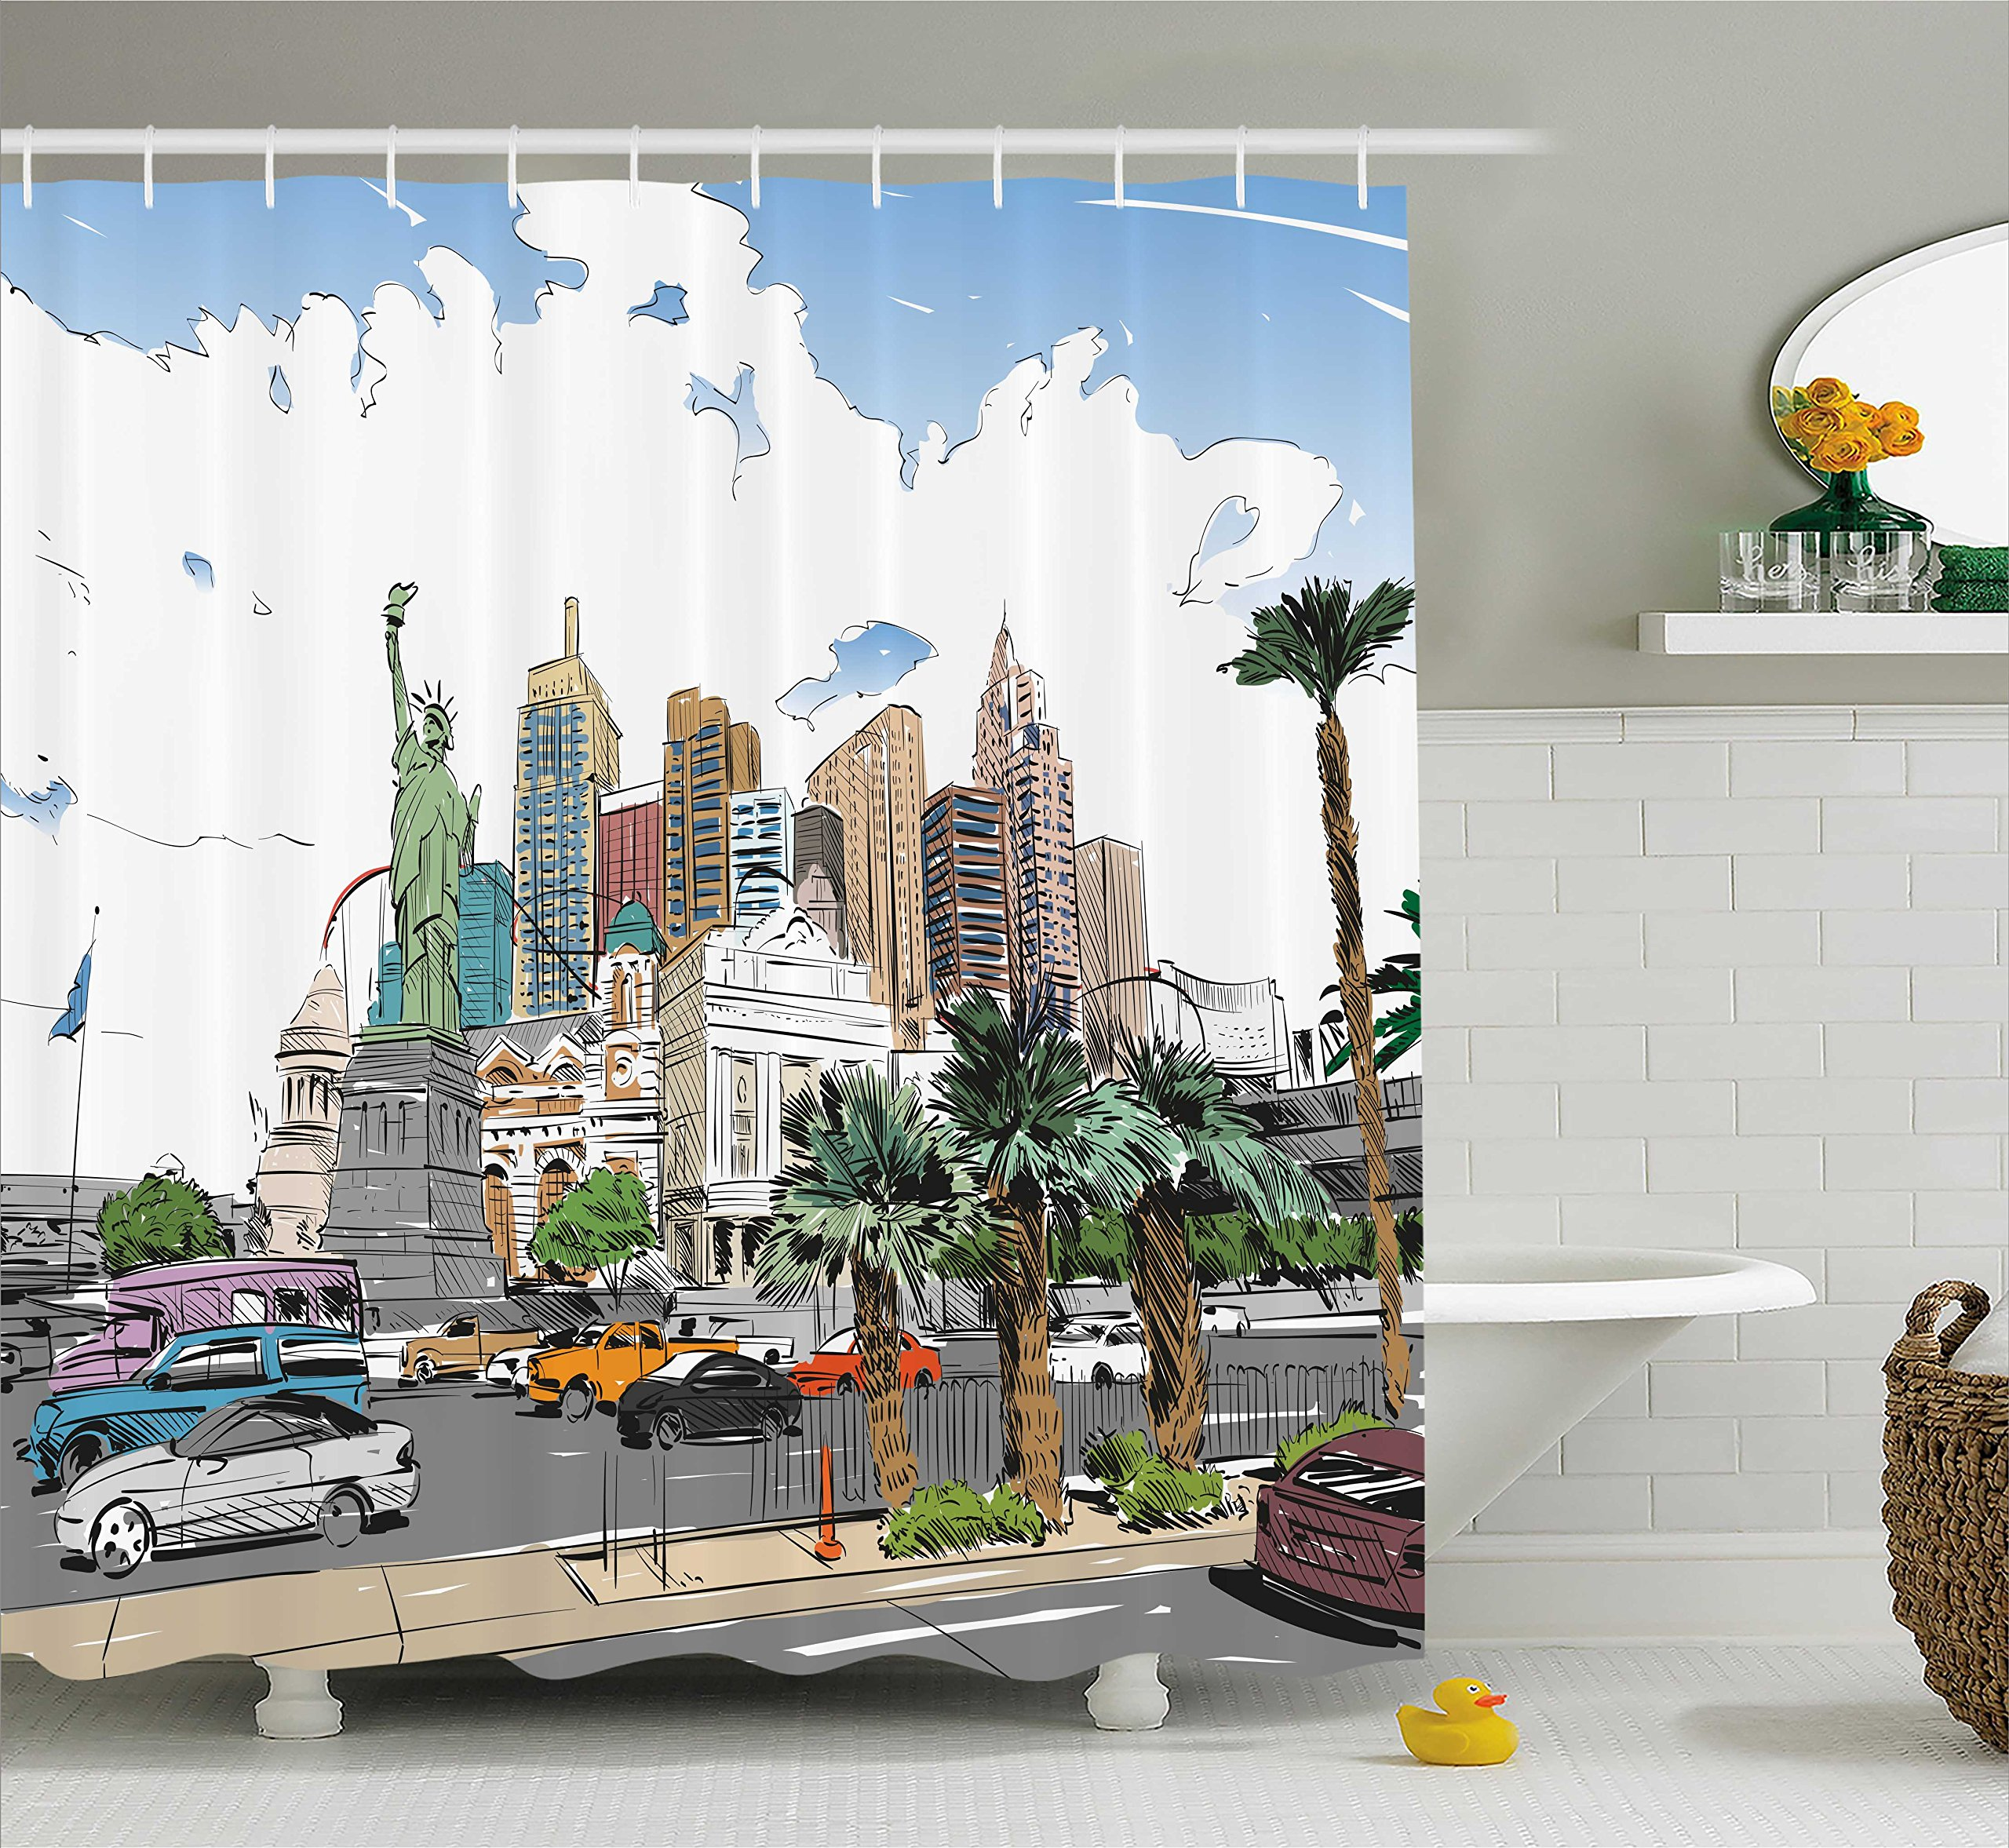 Ambesonne USA Shower Curtain, Hand Drawn Las Vegas City Nevada Street Sketch Buildings Statue of Liberty Cars Palms, Fabric Bathroom Decor Set with Hooks, 75 Inches Long, Multicolor